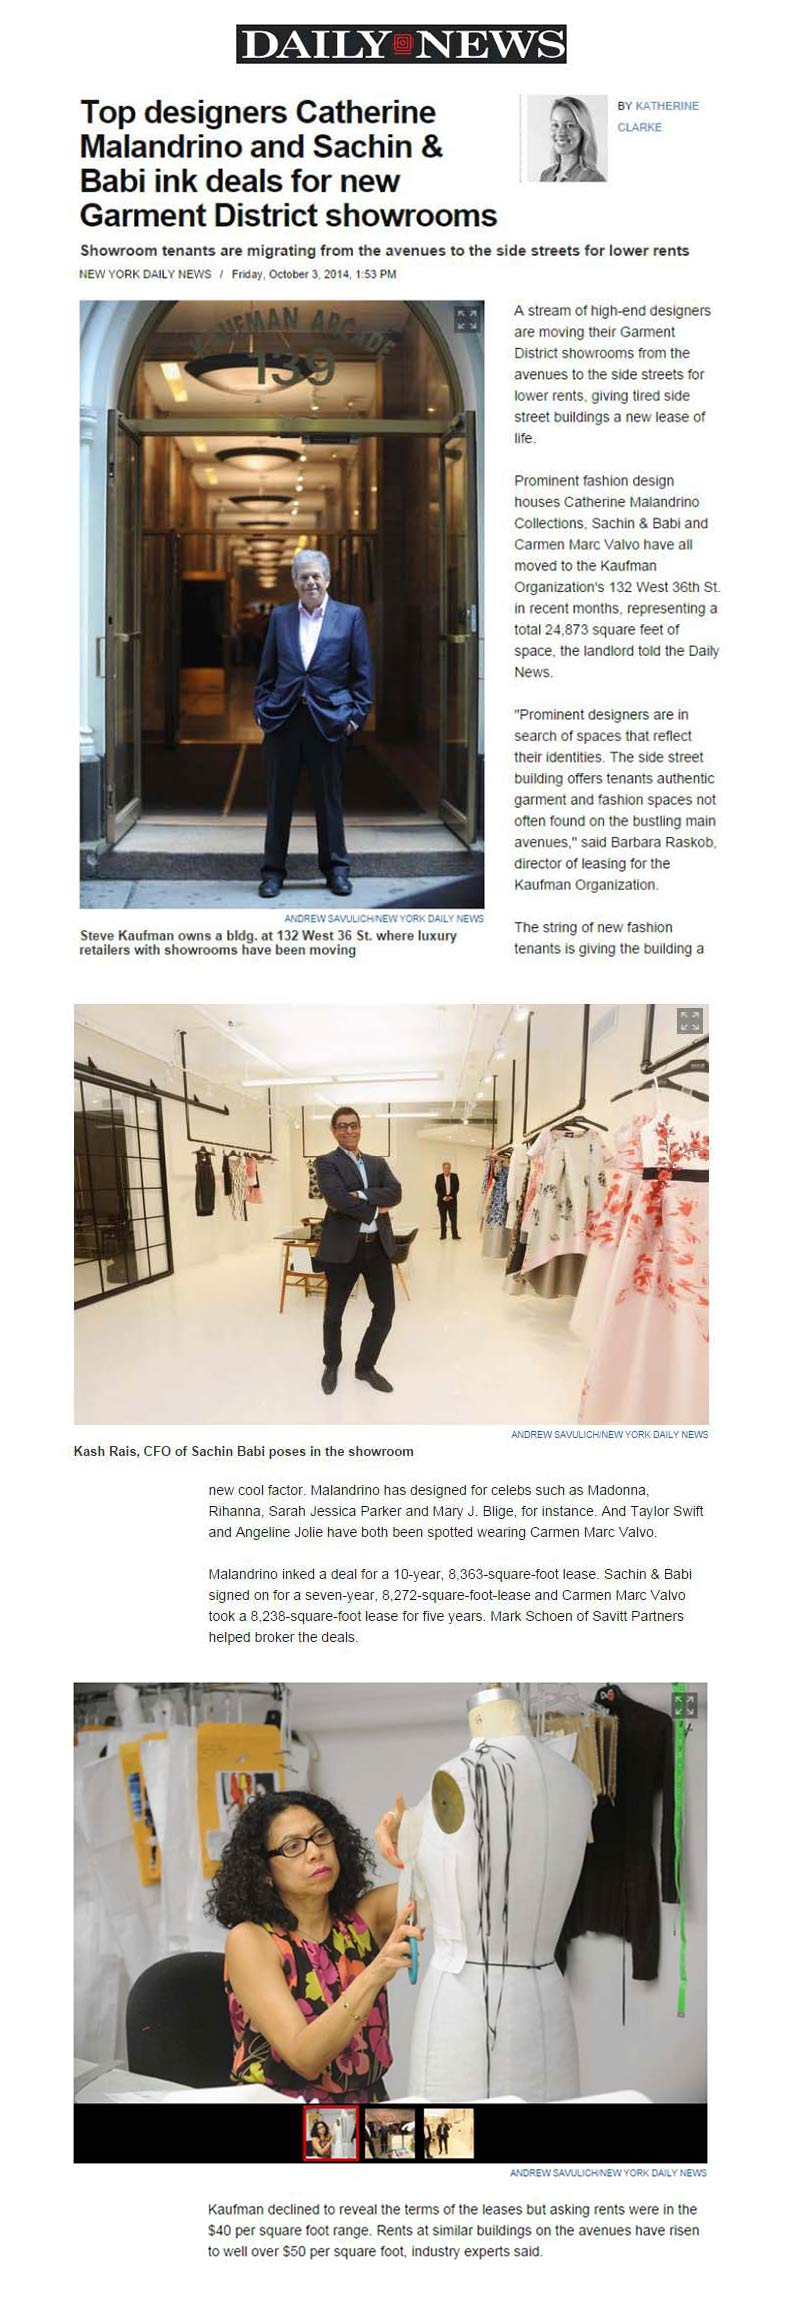 NY-Daily-News-(online)---Top-designers-Catherine-Malandrino-and-Sachin-&-Babi-ink-deals-for-new-Garment-District-showrooms---10.3